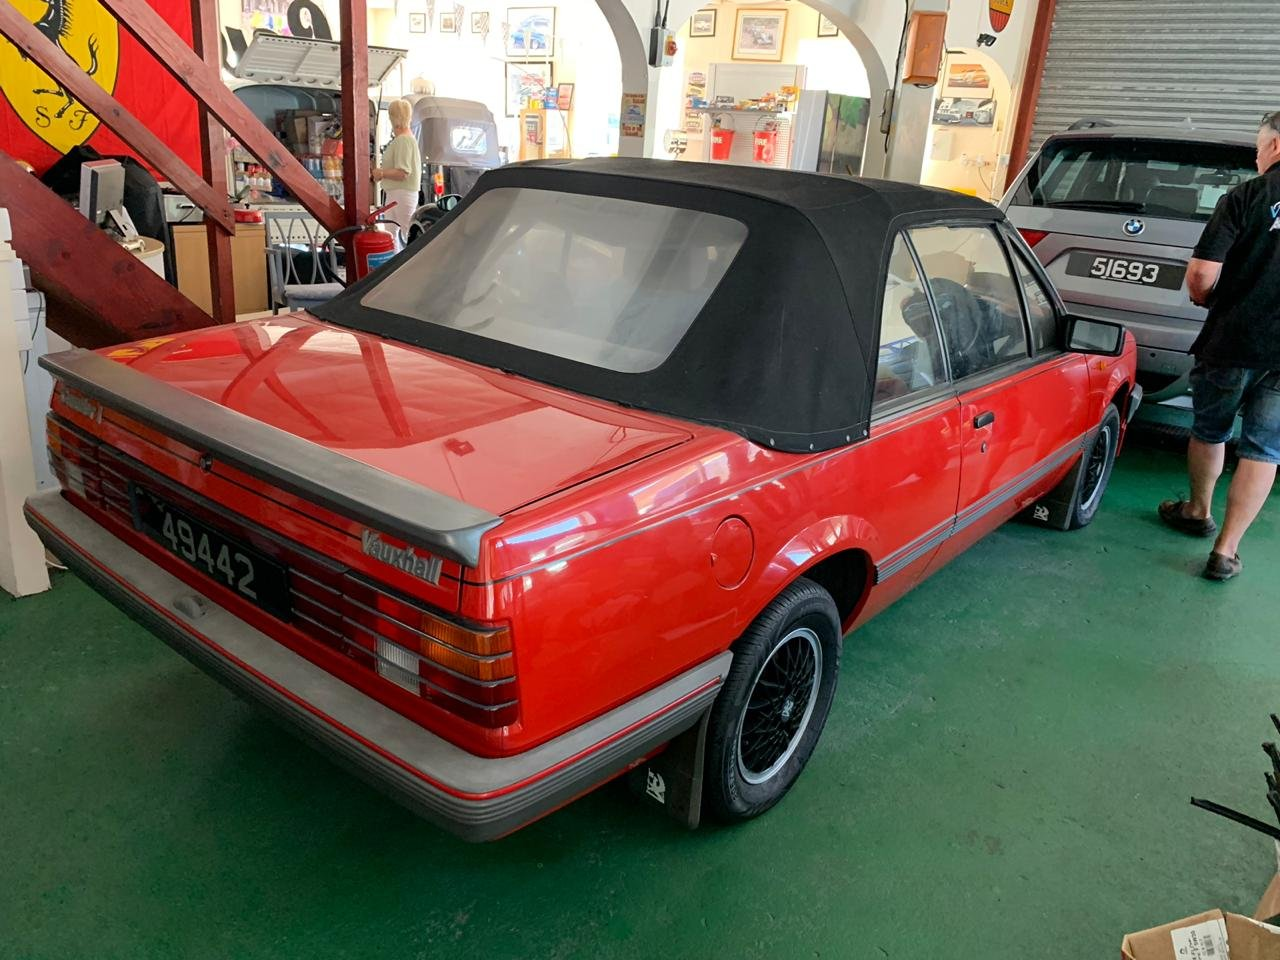 1986 Vauxhall Cavalier Cabriolet very low miles For Sale (picture 2 of 5)